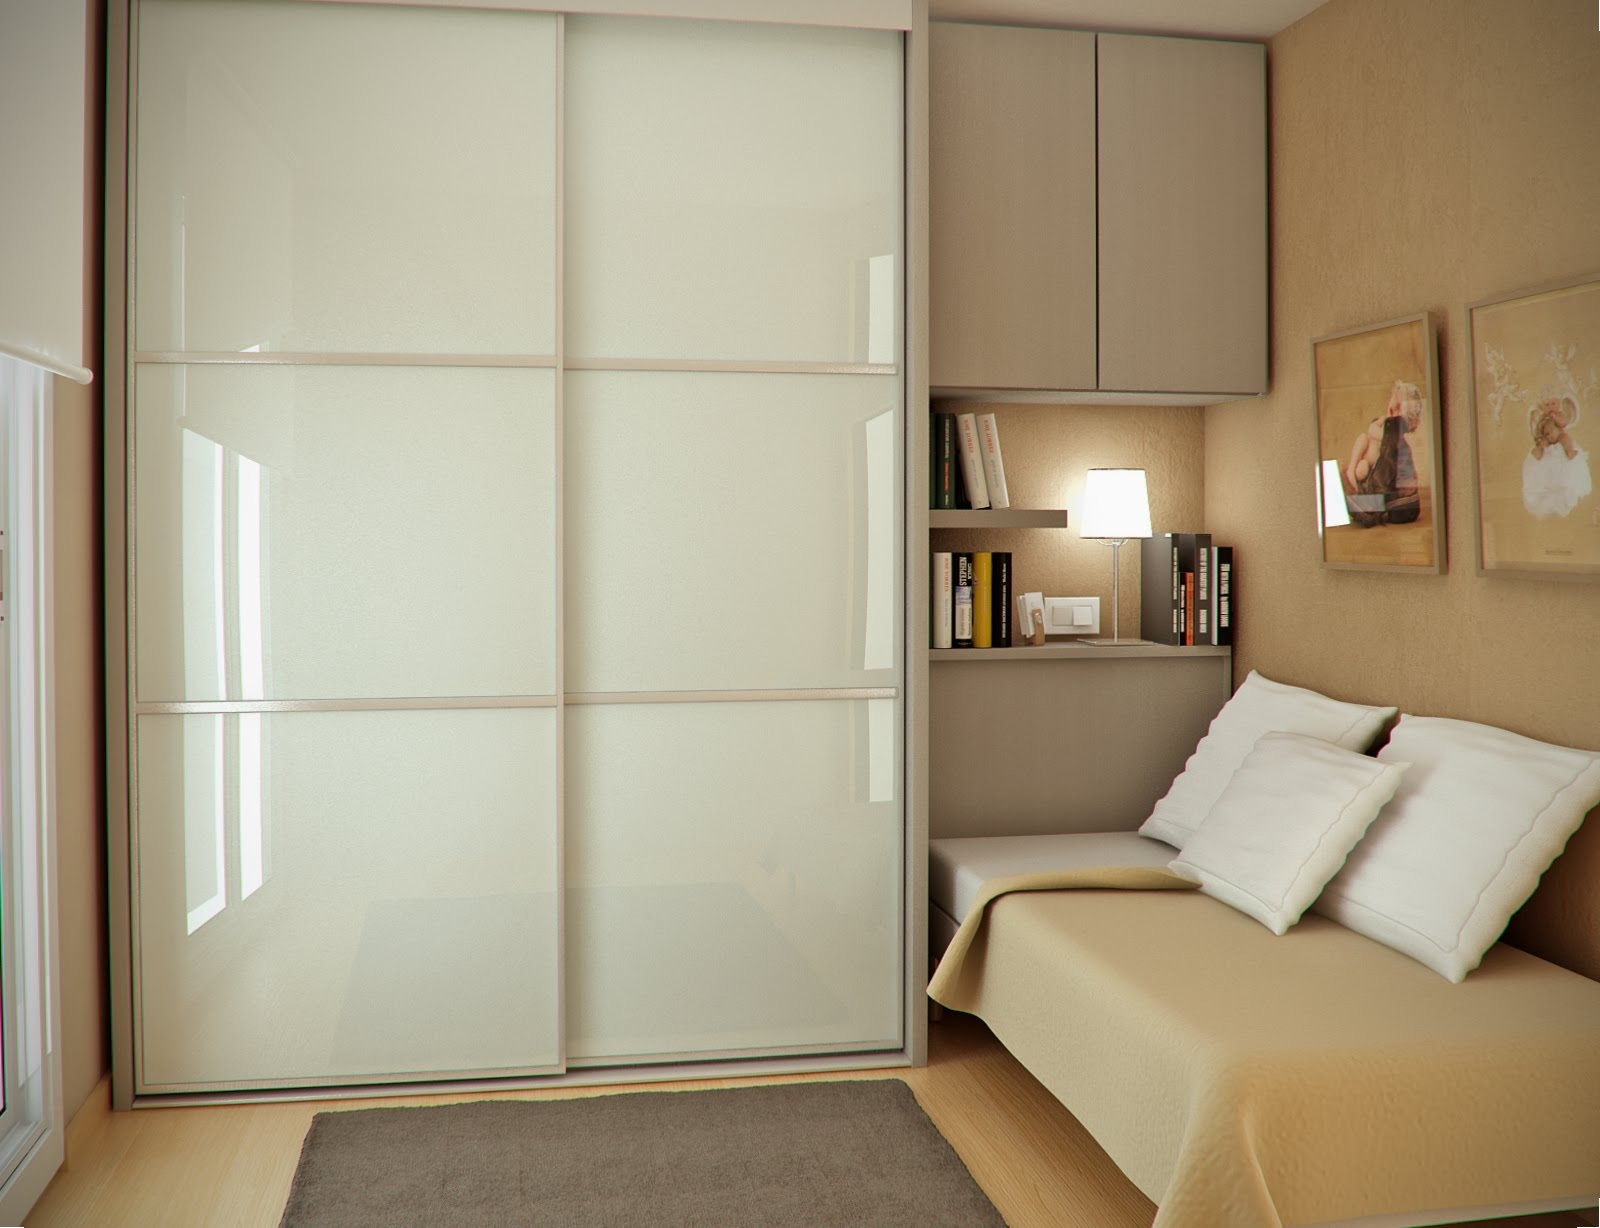 30 Space Saving Beds For Small Rooms Bathroom Space Savers Intended For Space Saving Wardrobes (Image 2 of 25)